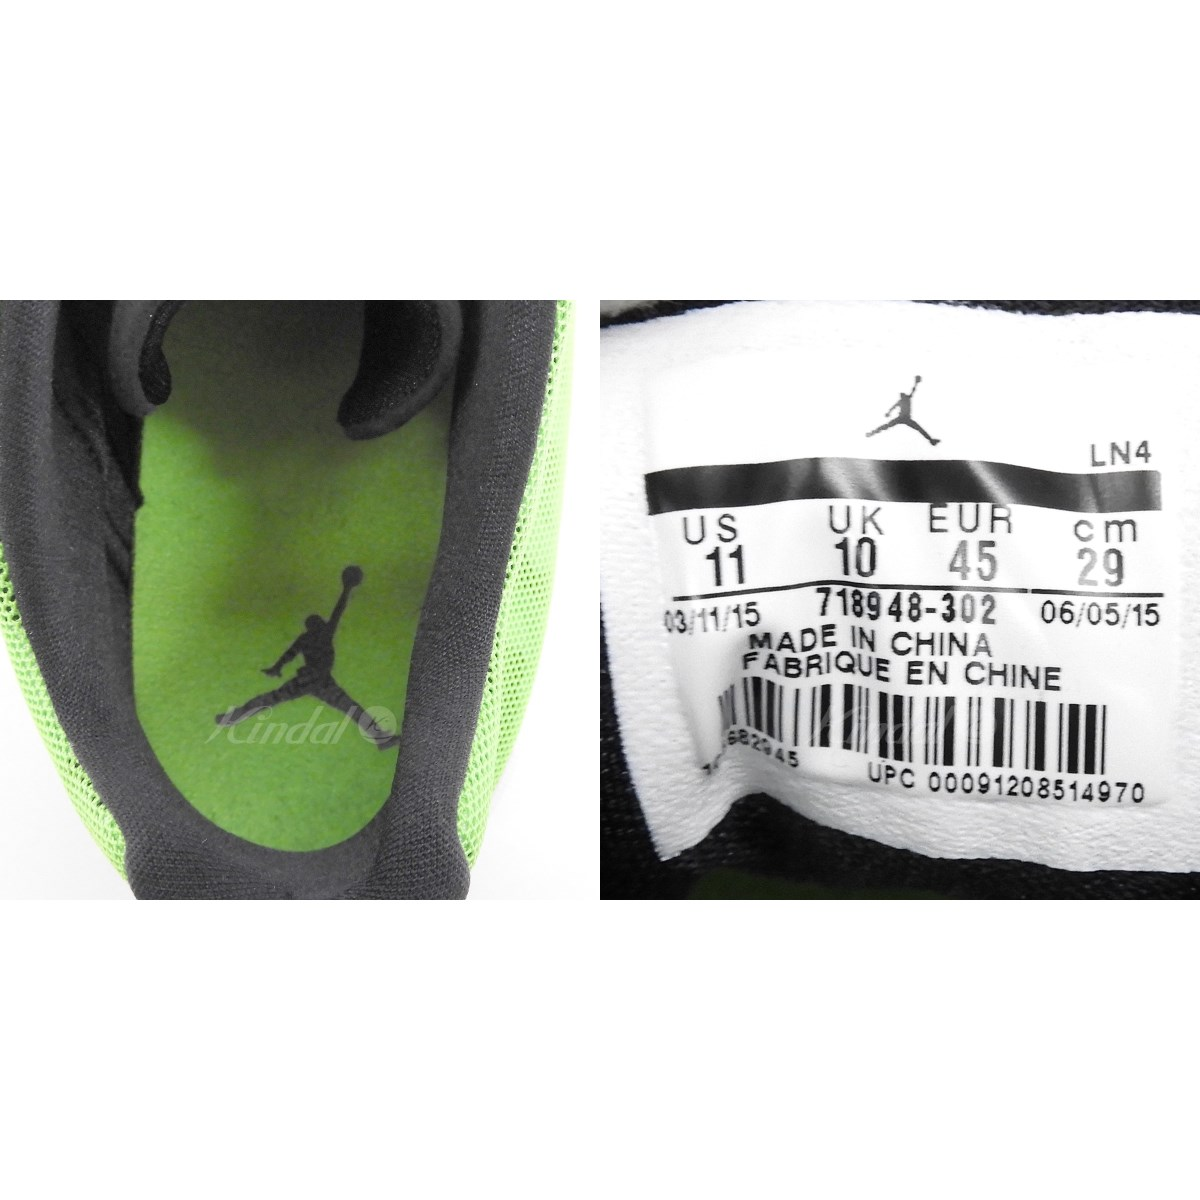 Air Jordan Avenir Faible Ukulélé